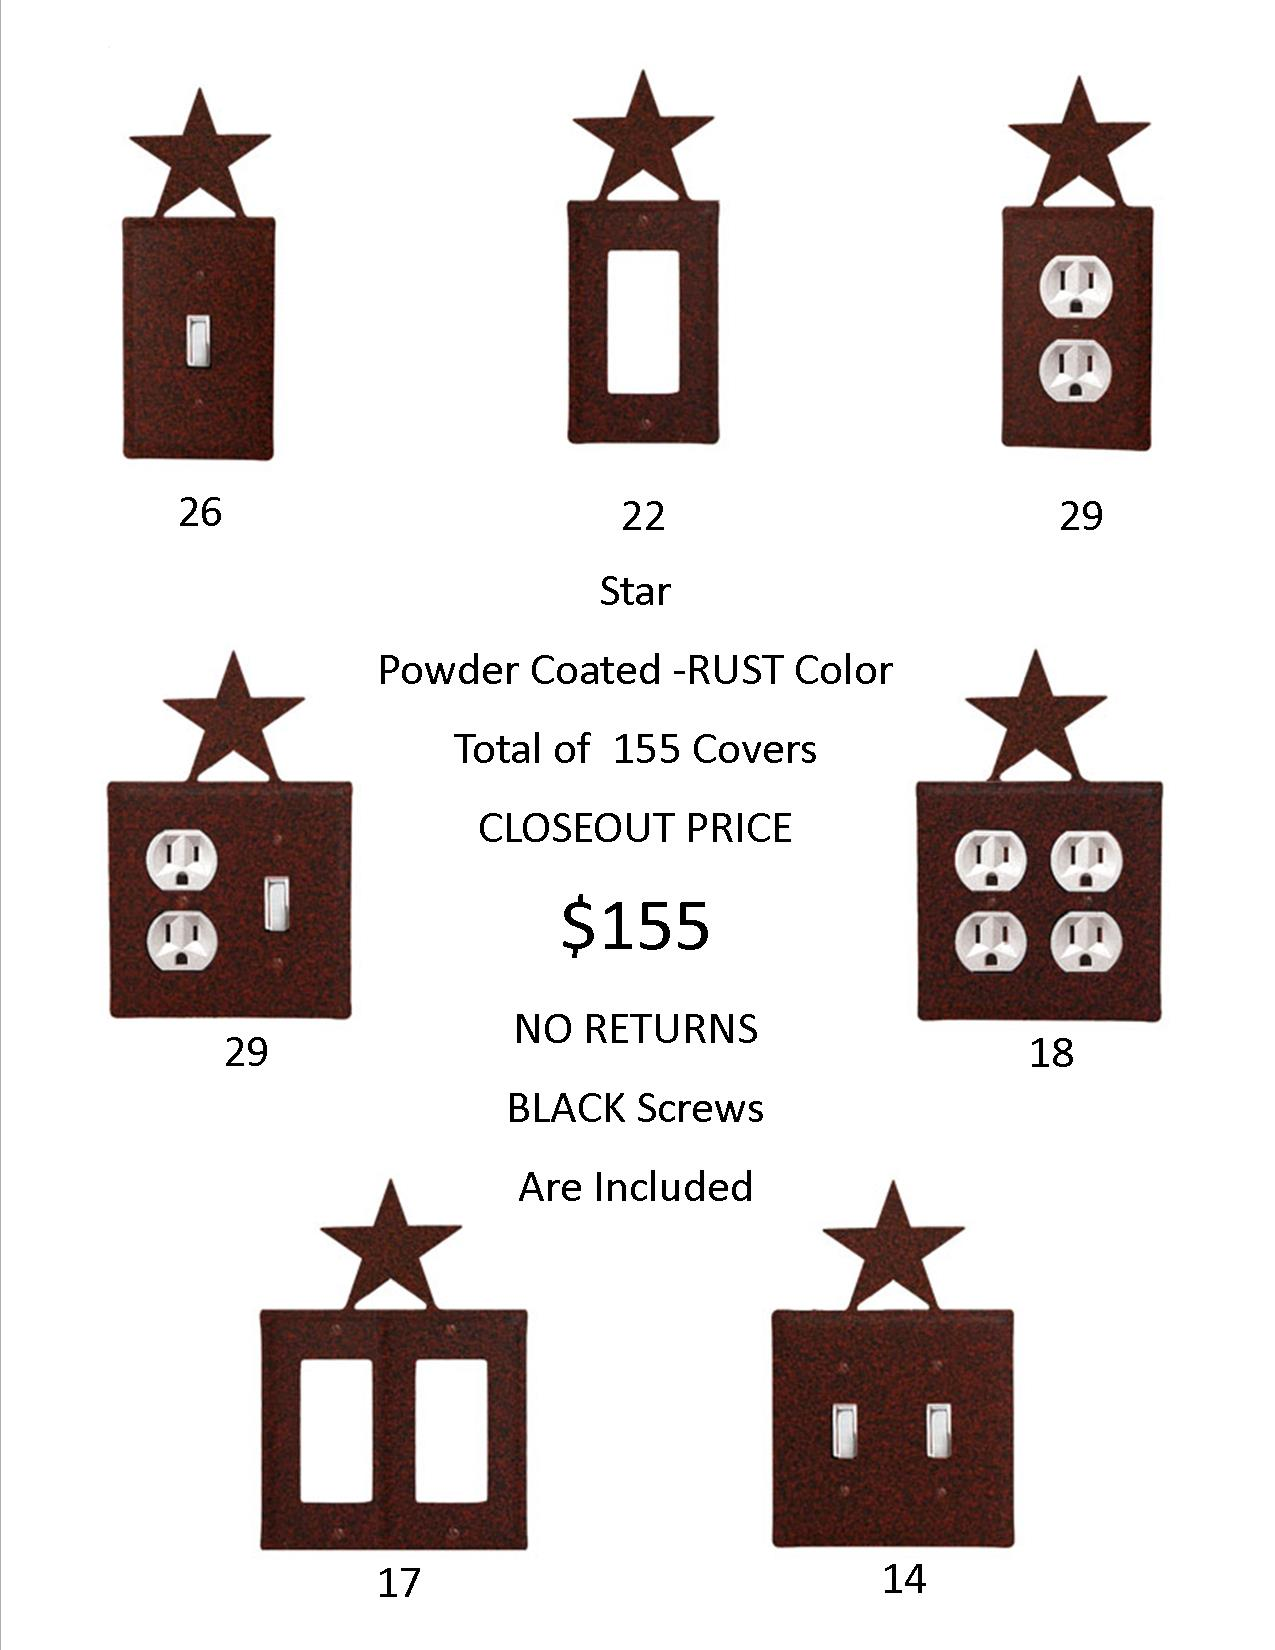 STAR CLOSEOUT - Rust Color ONLY.   155 Covers for only 1 EACH!    Hundreds Of Dollars Worth of SAVINGS and that's just on the Wholesale Price! Jut think of the PROFIT on the Retail Sales.